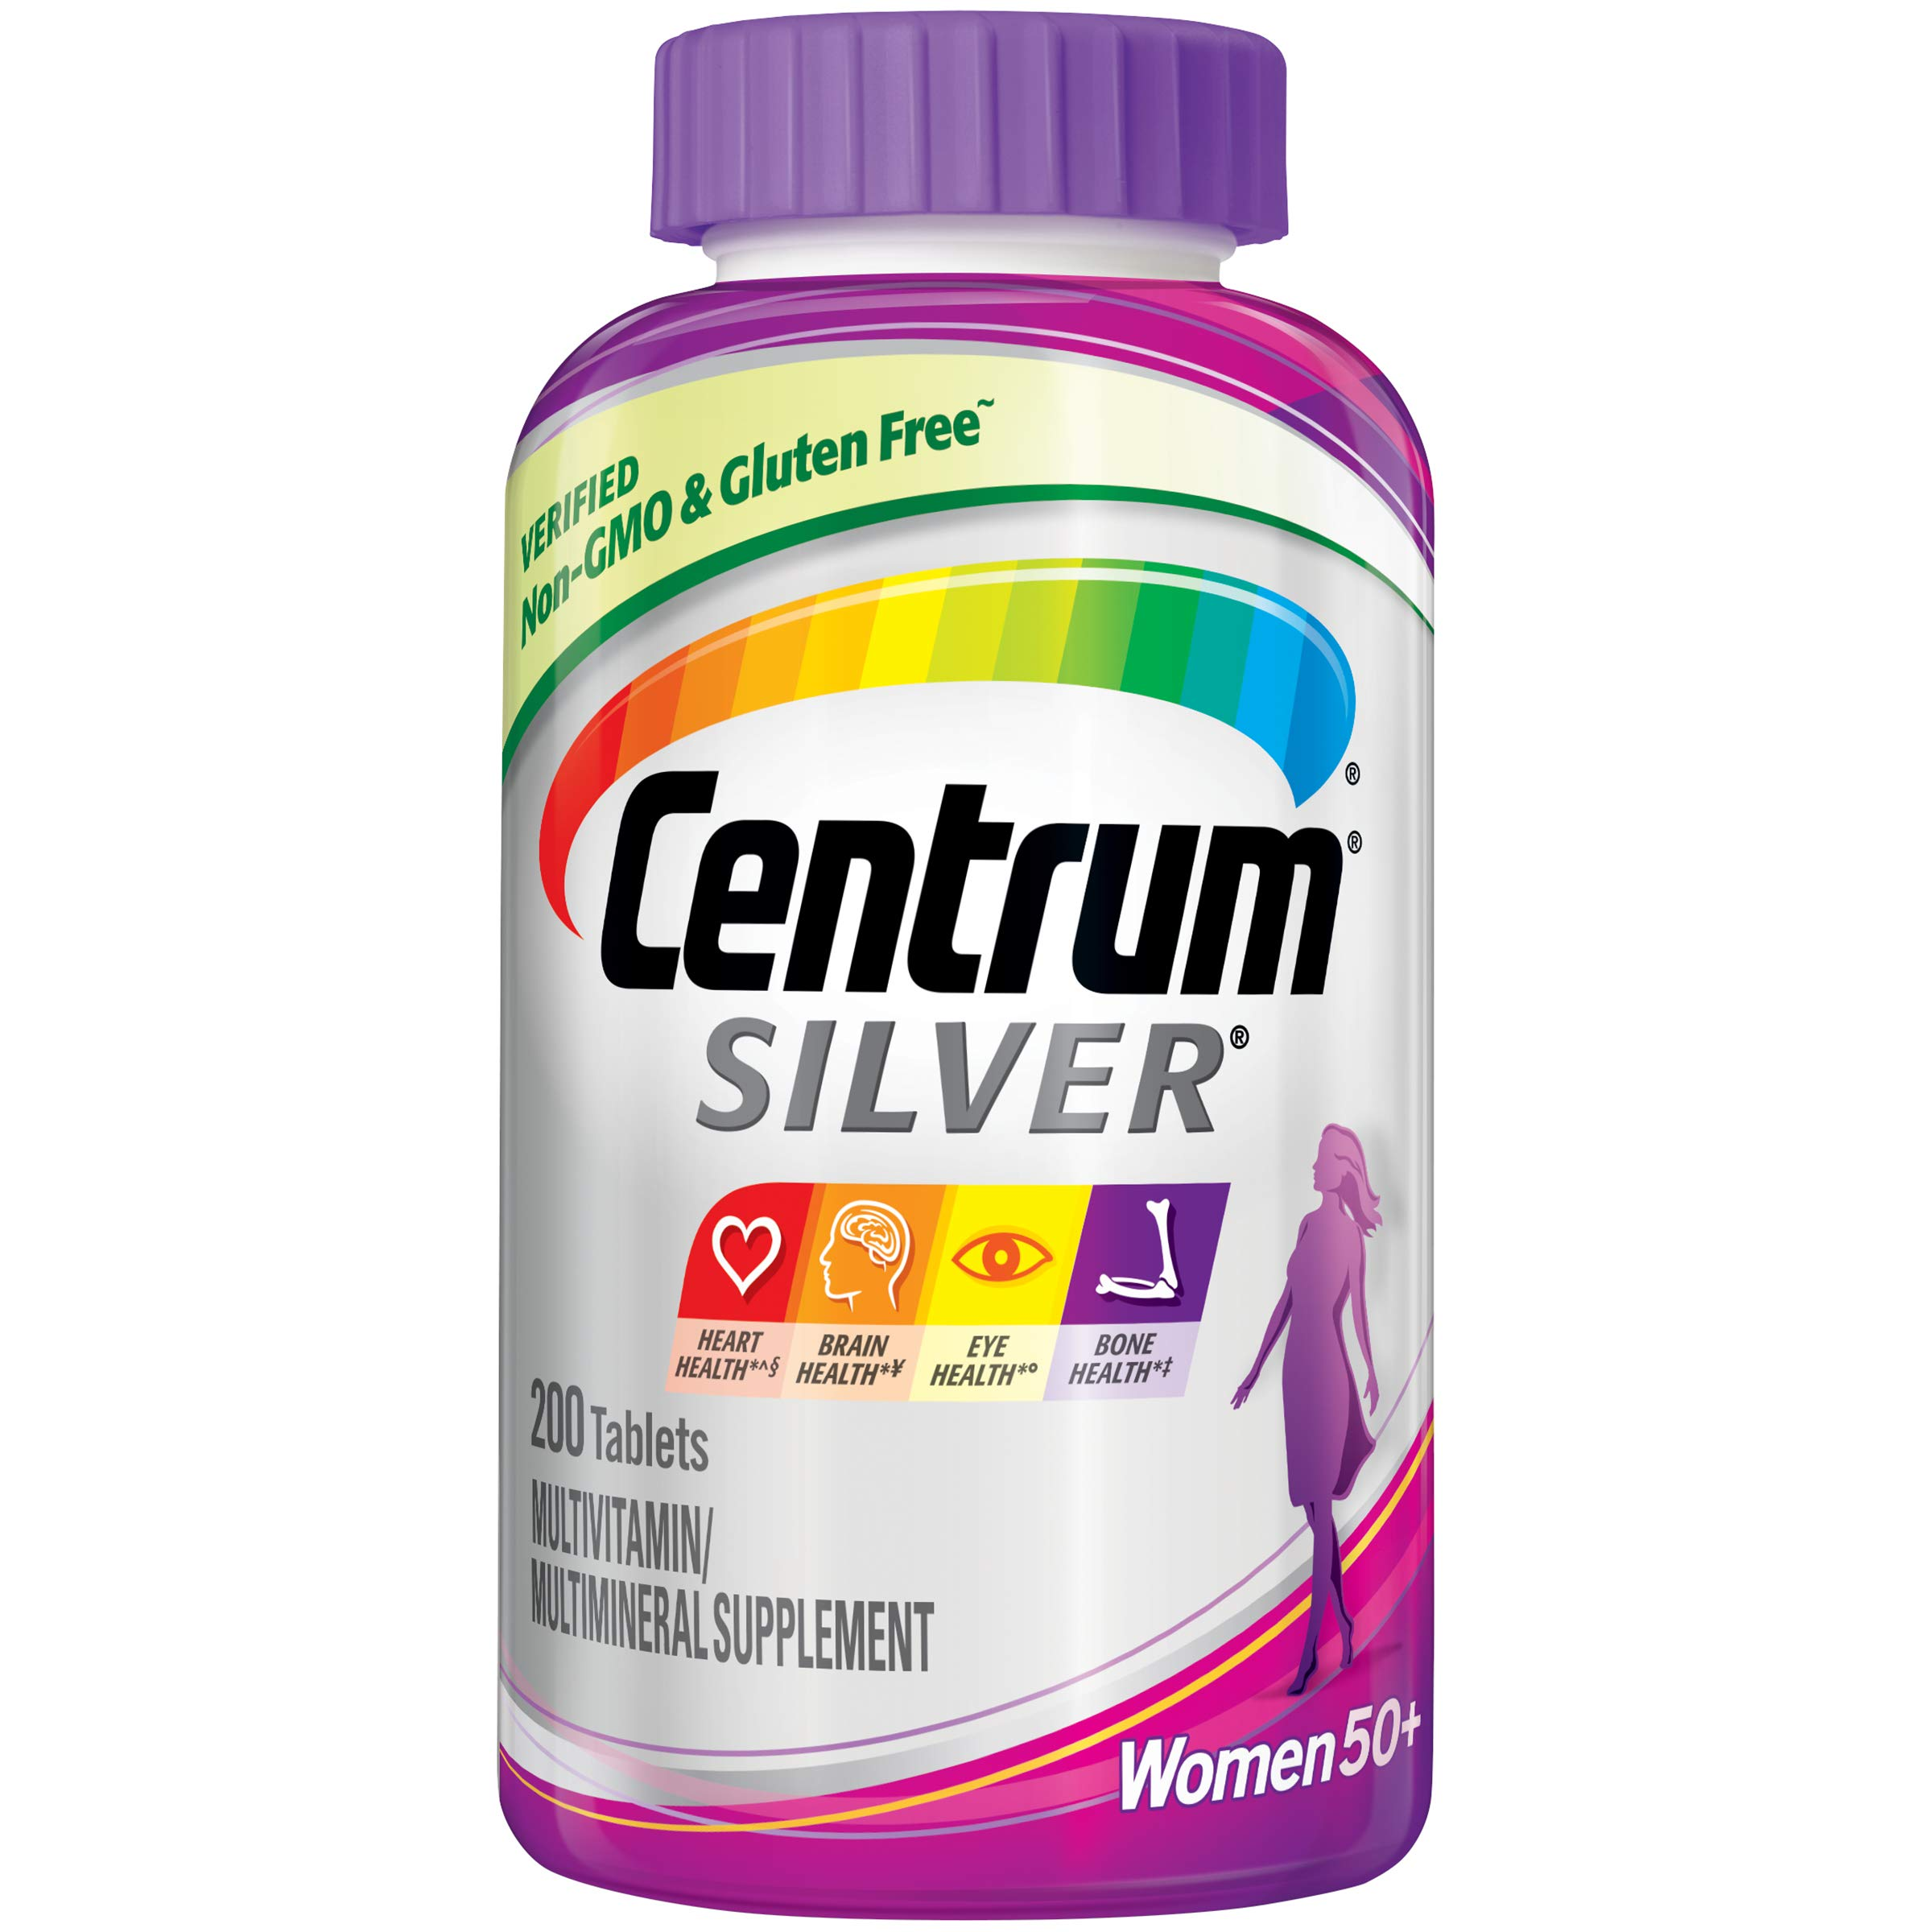 Centrum Silver Multivitamin for Women 50 Plus, Multivitamin/Multimineral Supplement with Vitamin D3, B Vitamins, Calcium and Antioxidants - 200 Count